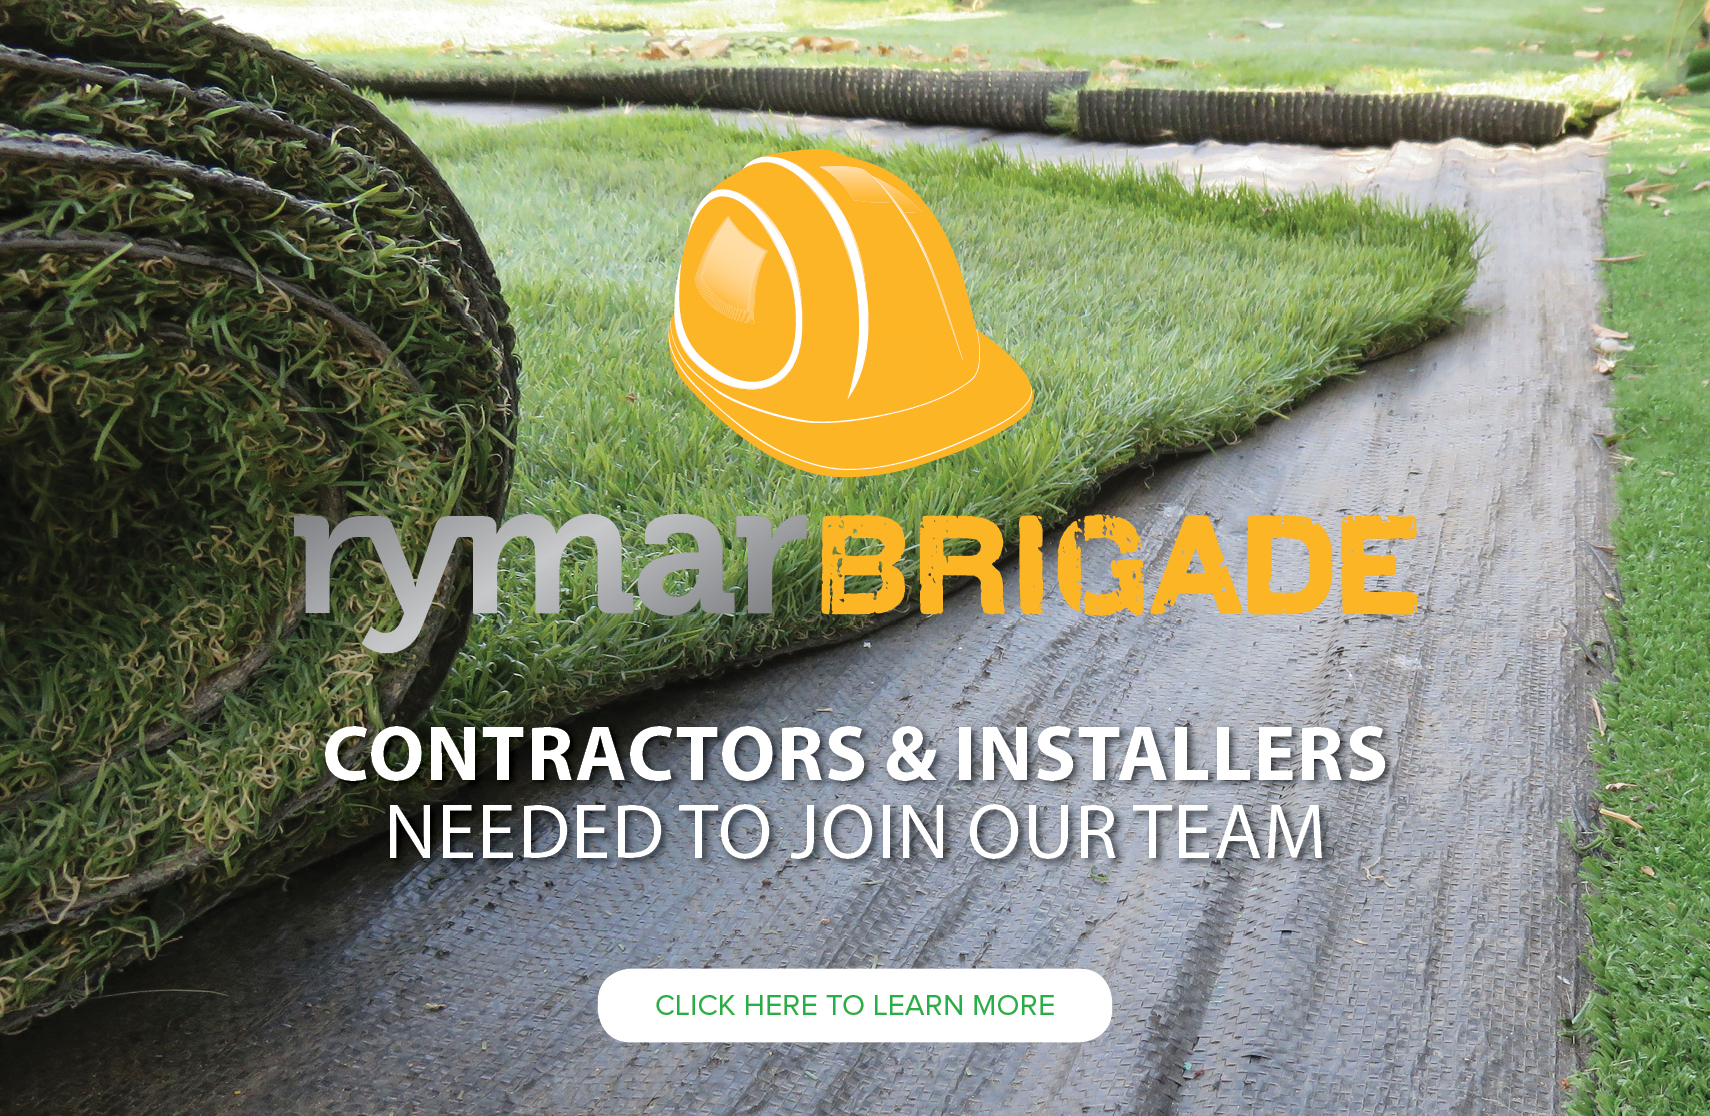 Rymar-Brigade-Contractors-Installers-Needed